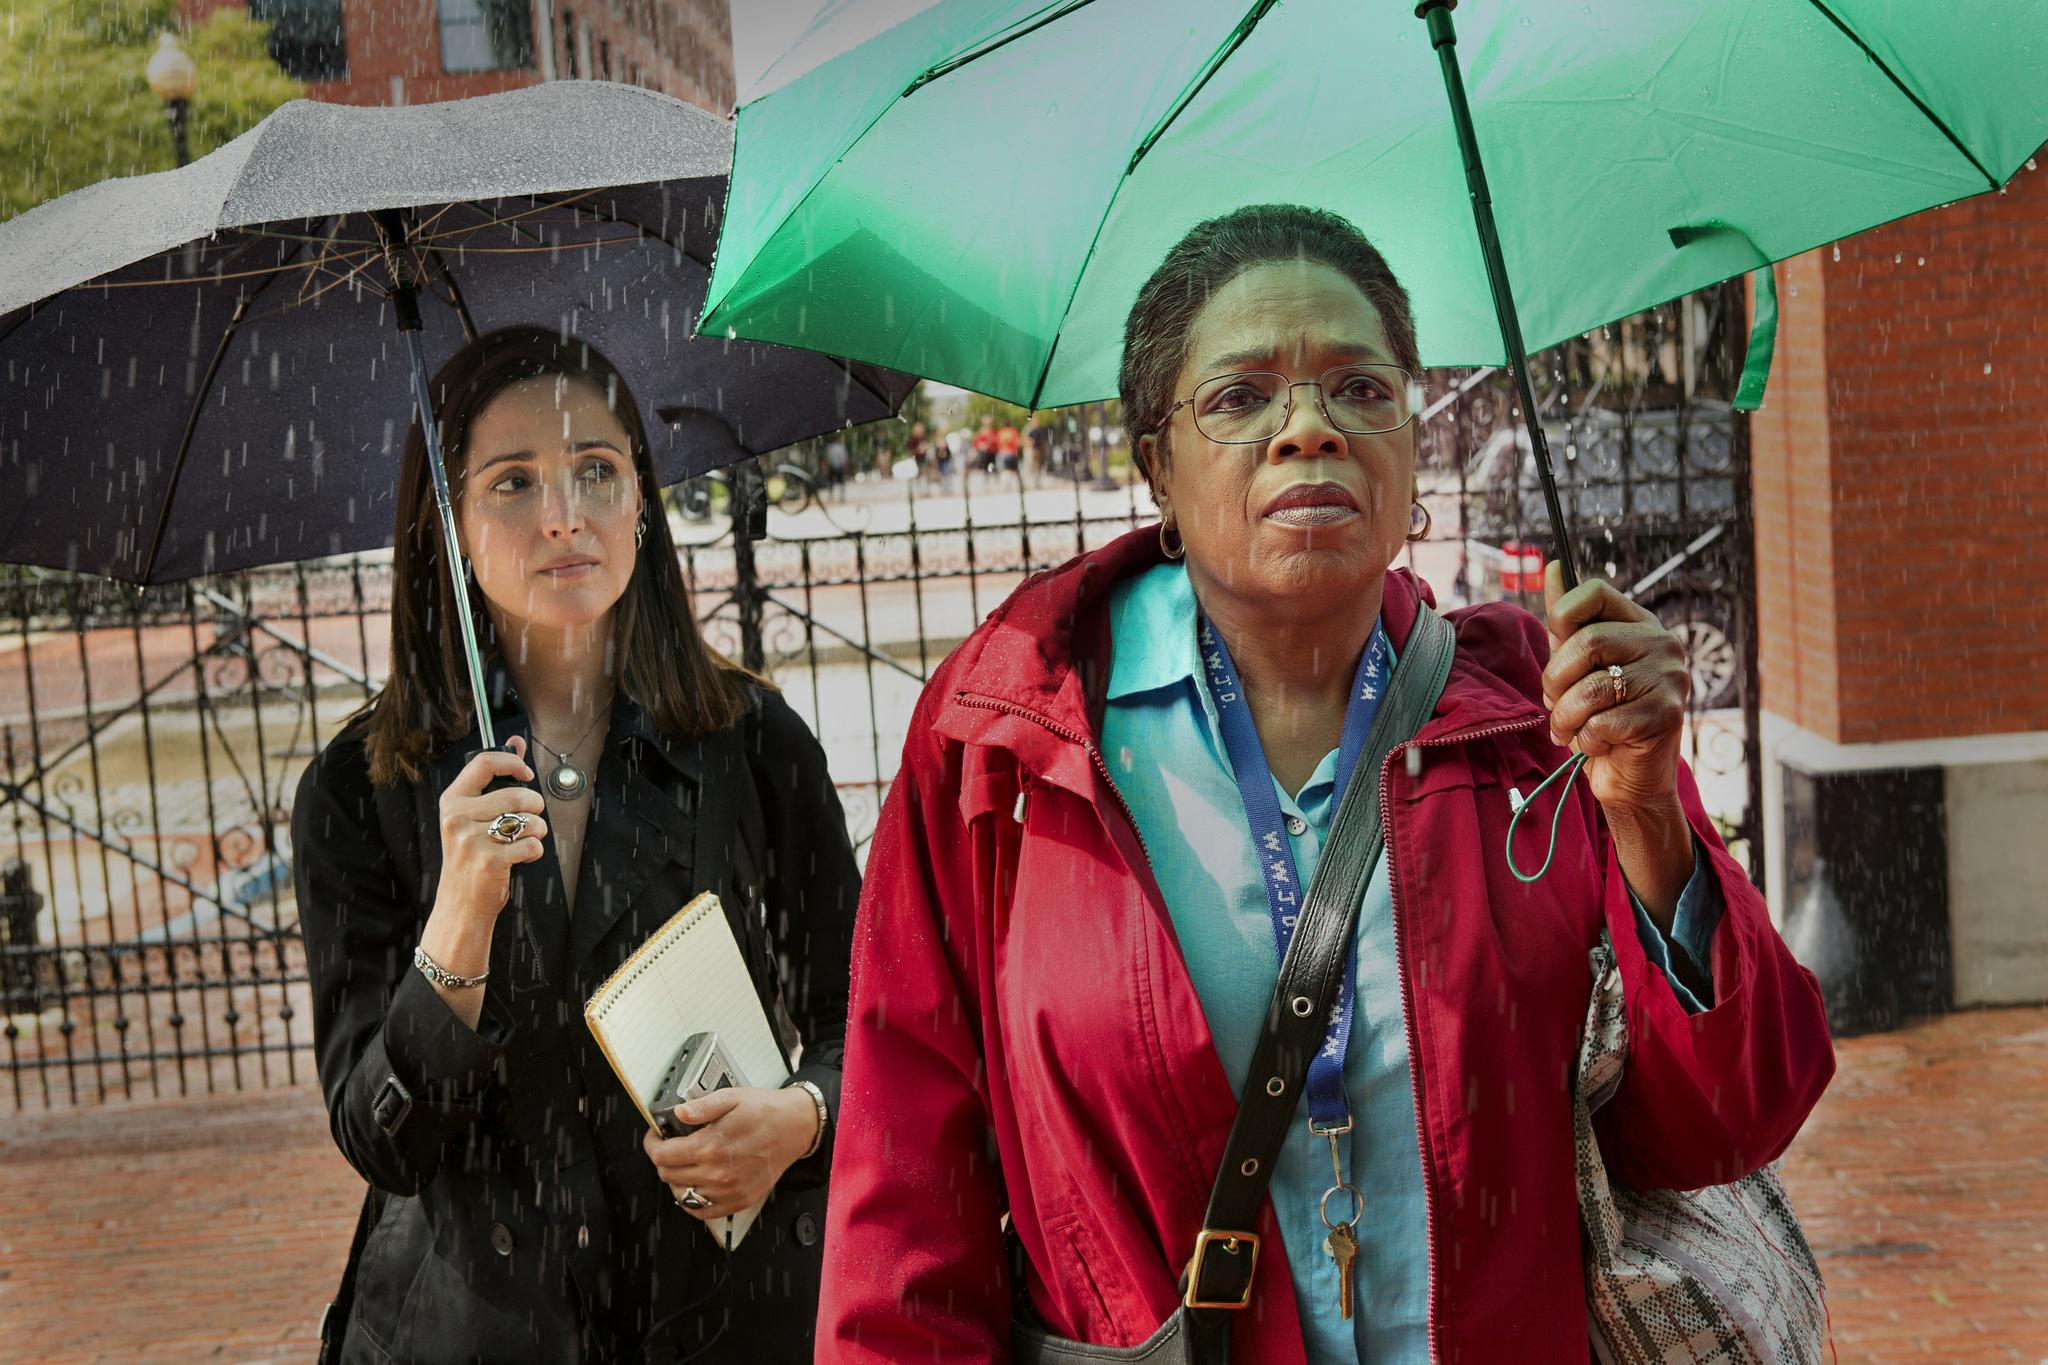 Rose Byrne as Rebecca Skloot and Oprah Winfrey as Deborah Lacks. Skloot is not only the book's author but also a central part of the story.